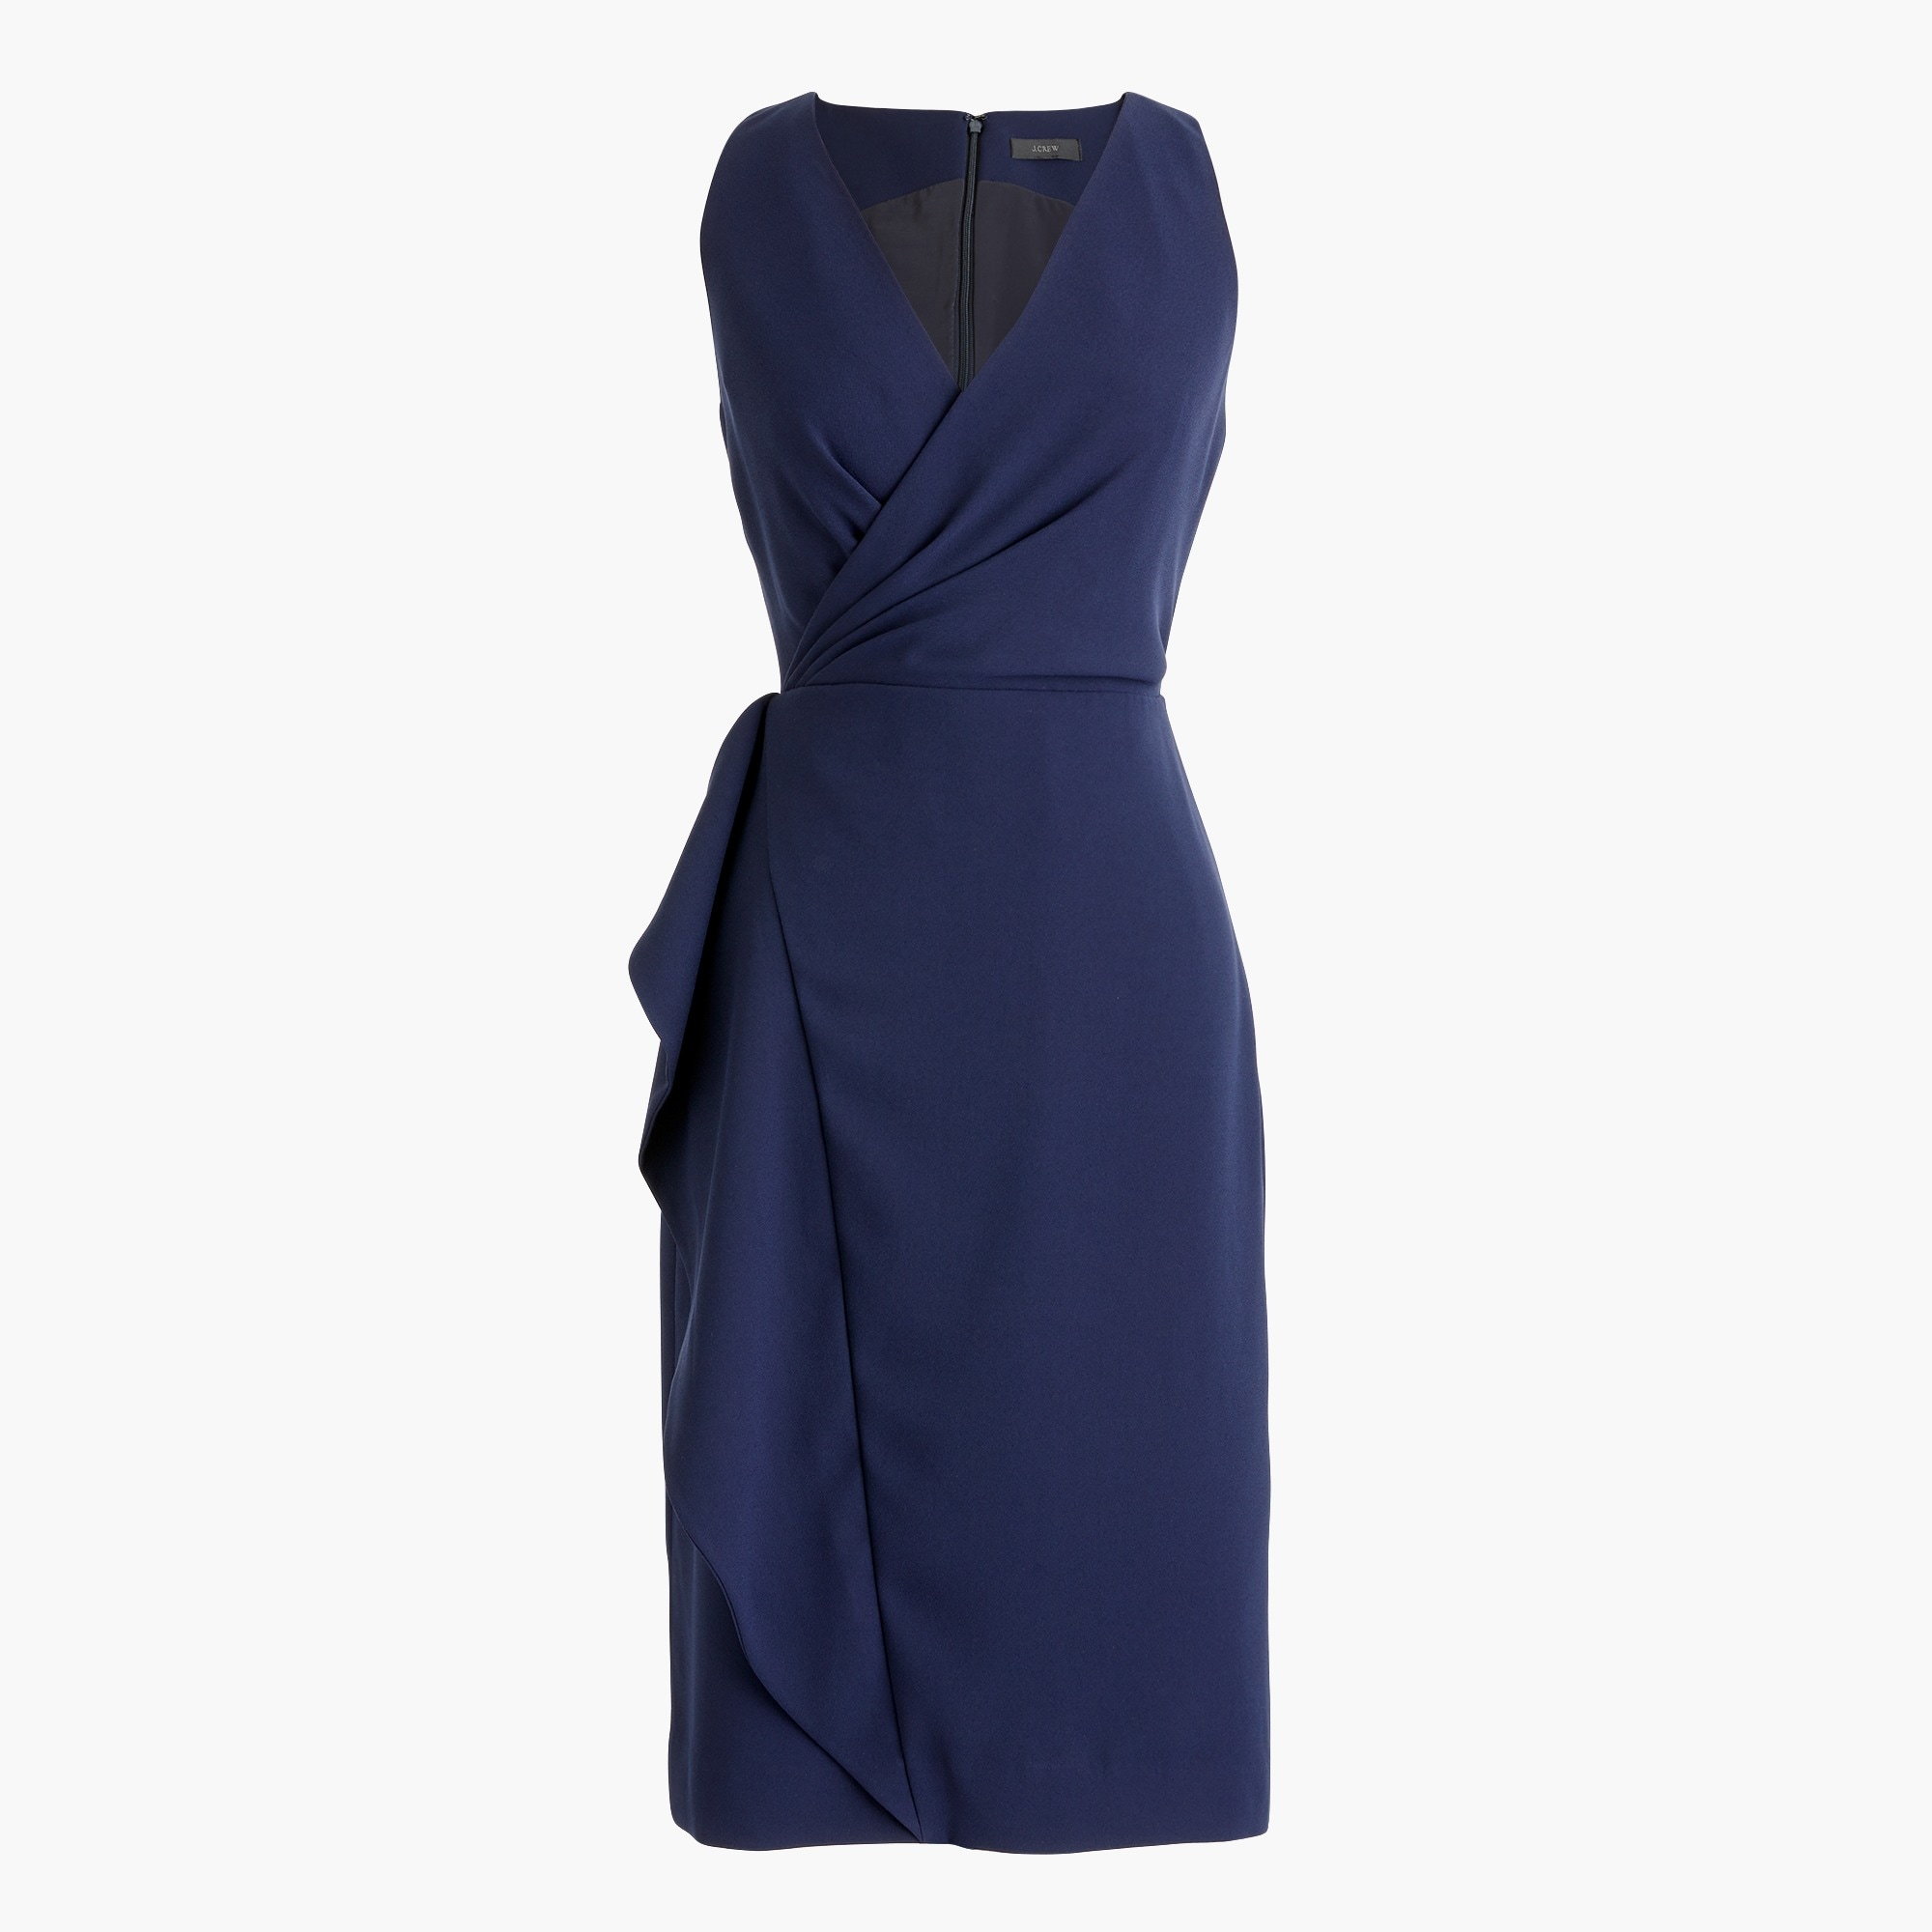 women's side-sash dress in 365 crepe - women's dresses